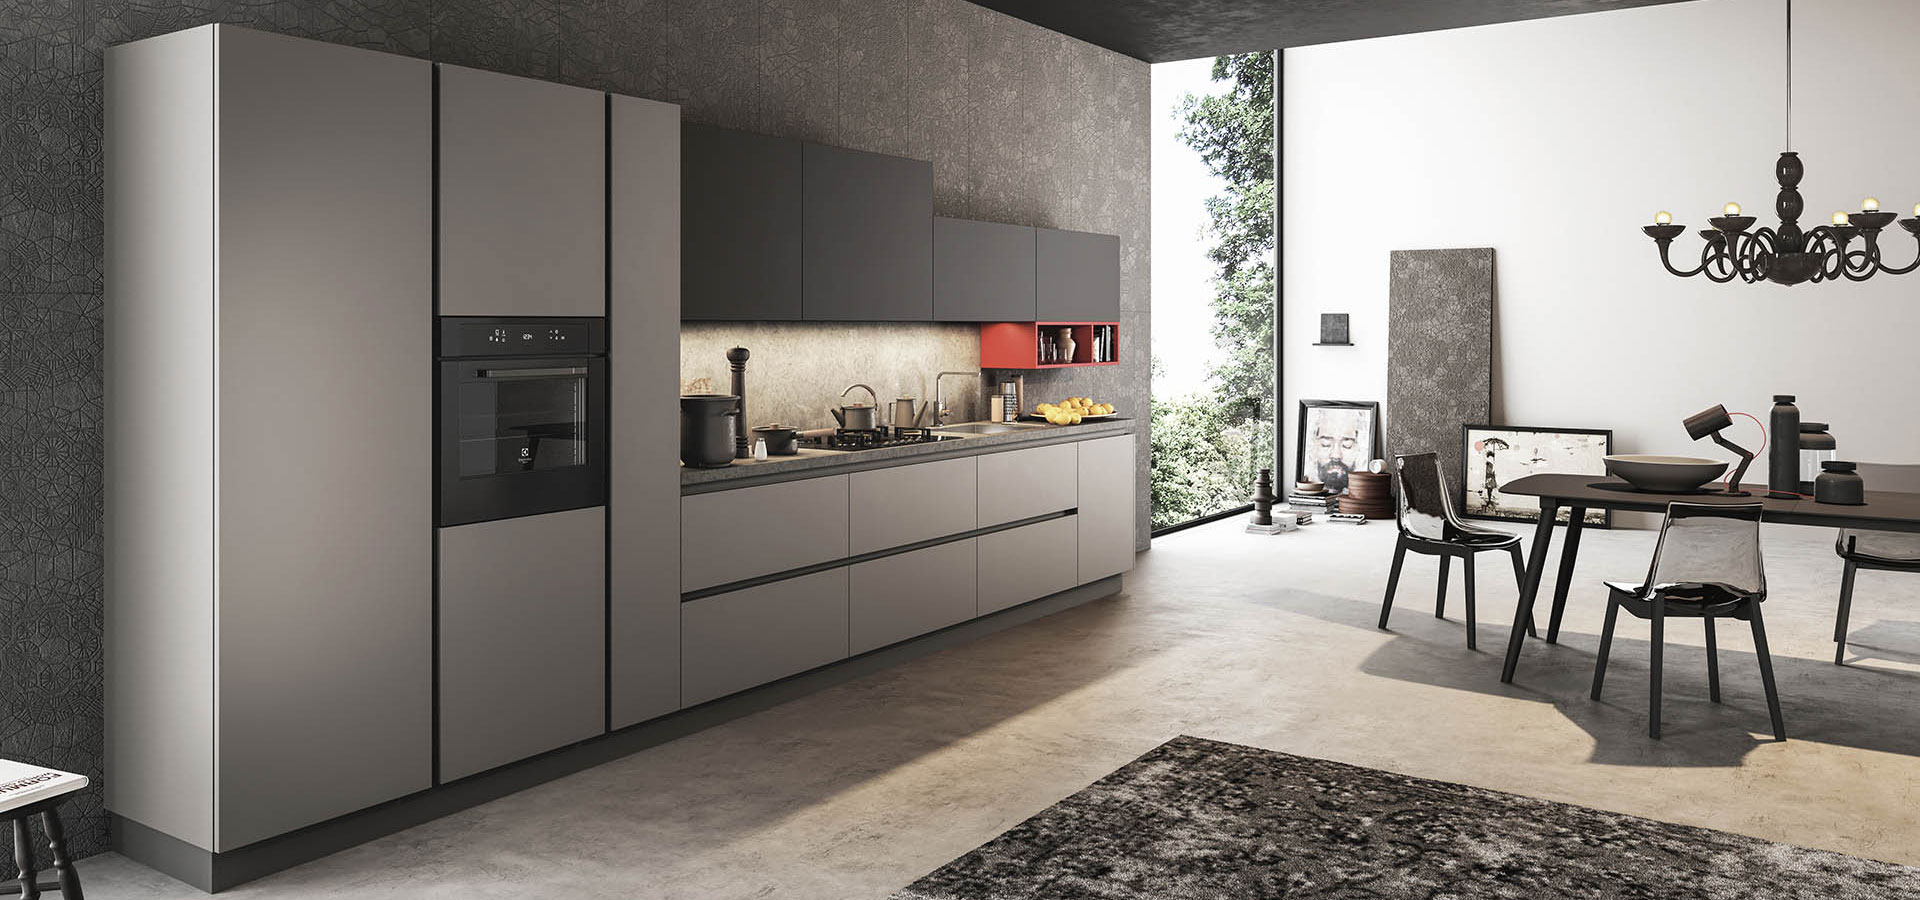 Cucine Outlet Lombardia. Cucina Ernestomeda Carr Outlet With ...